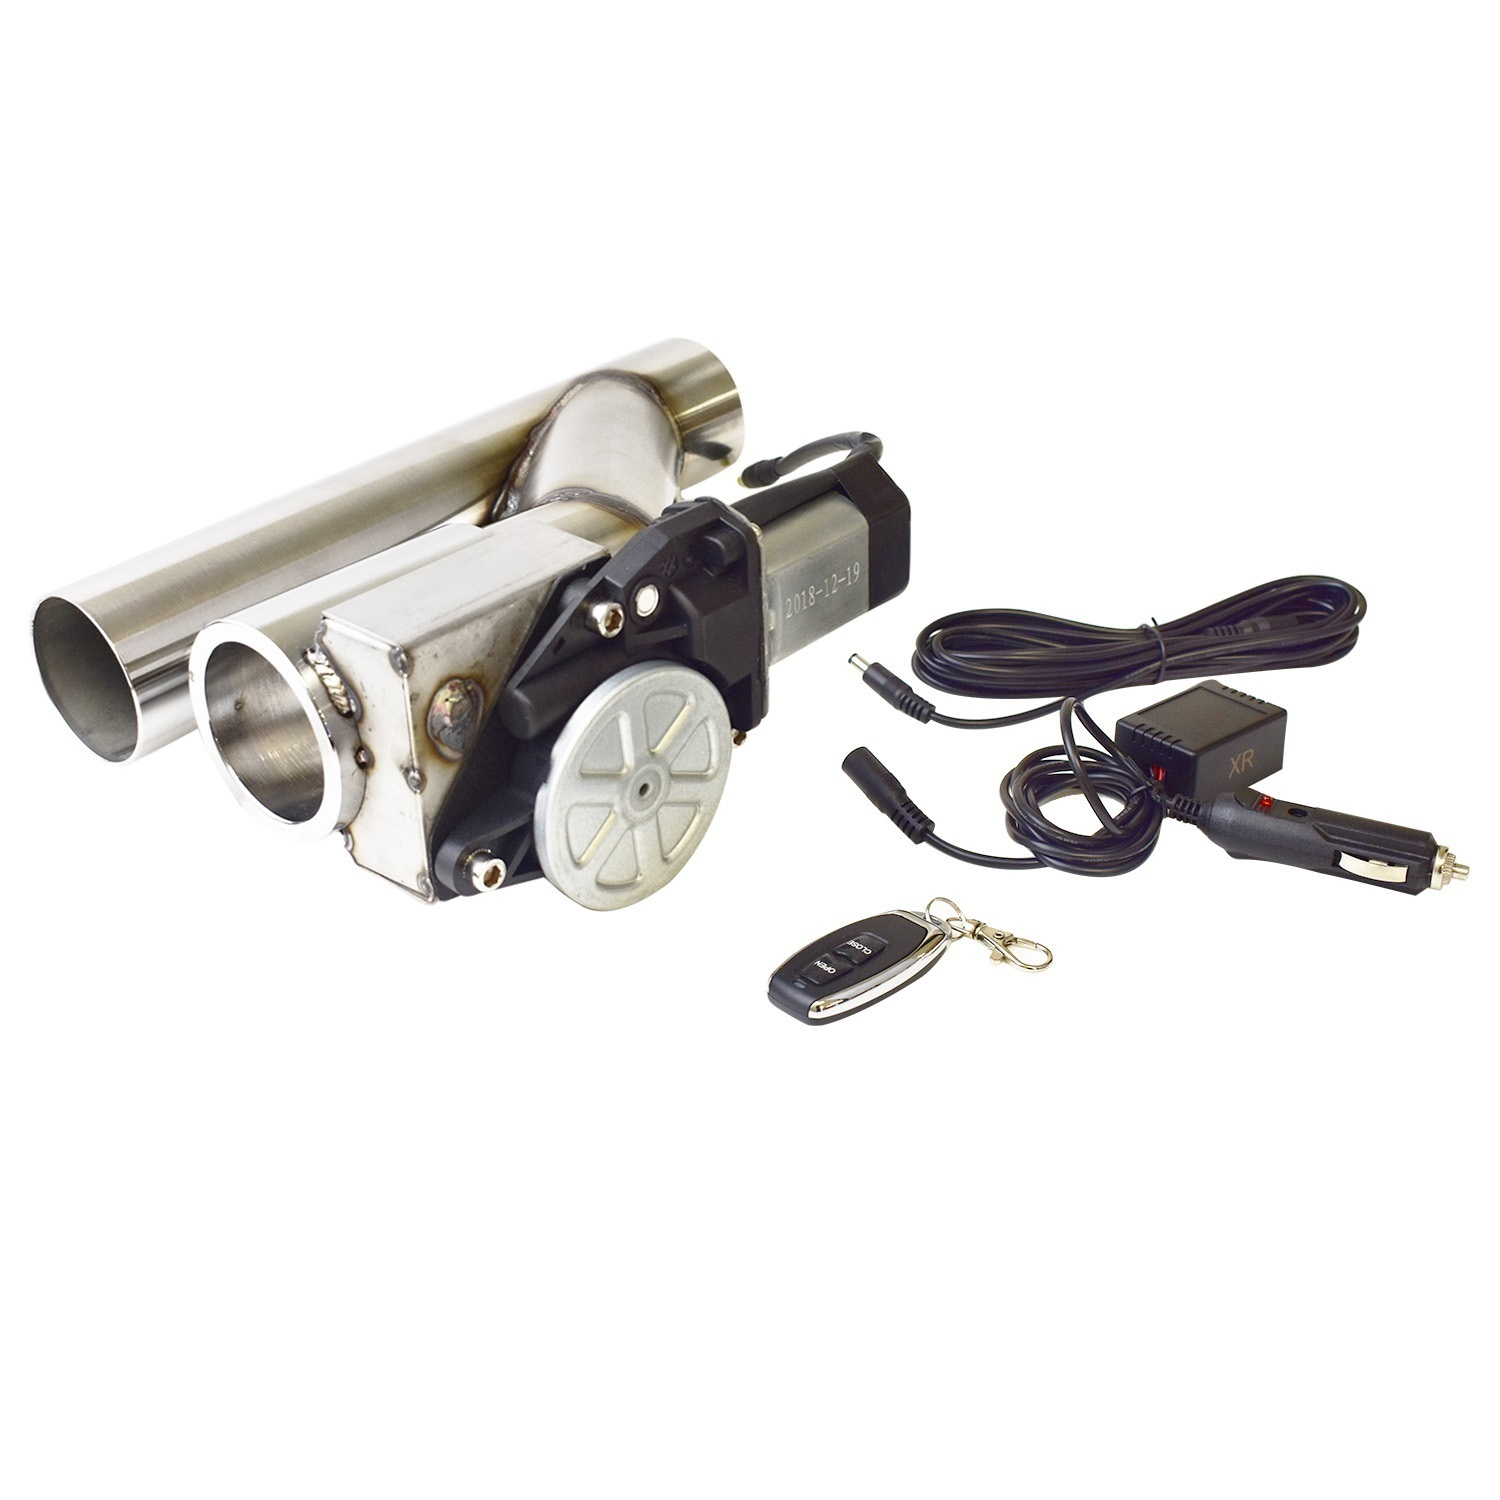 Stainless Electric Exhaust Cut Outs Series II with Remote controller Remote 2.5in.